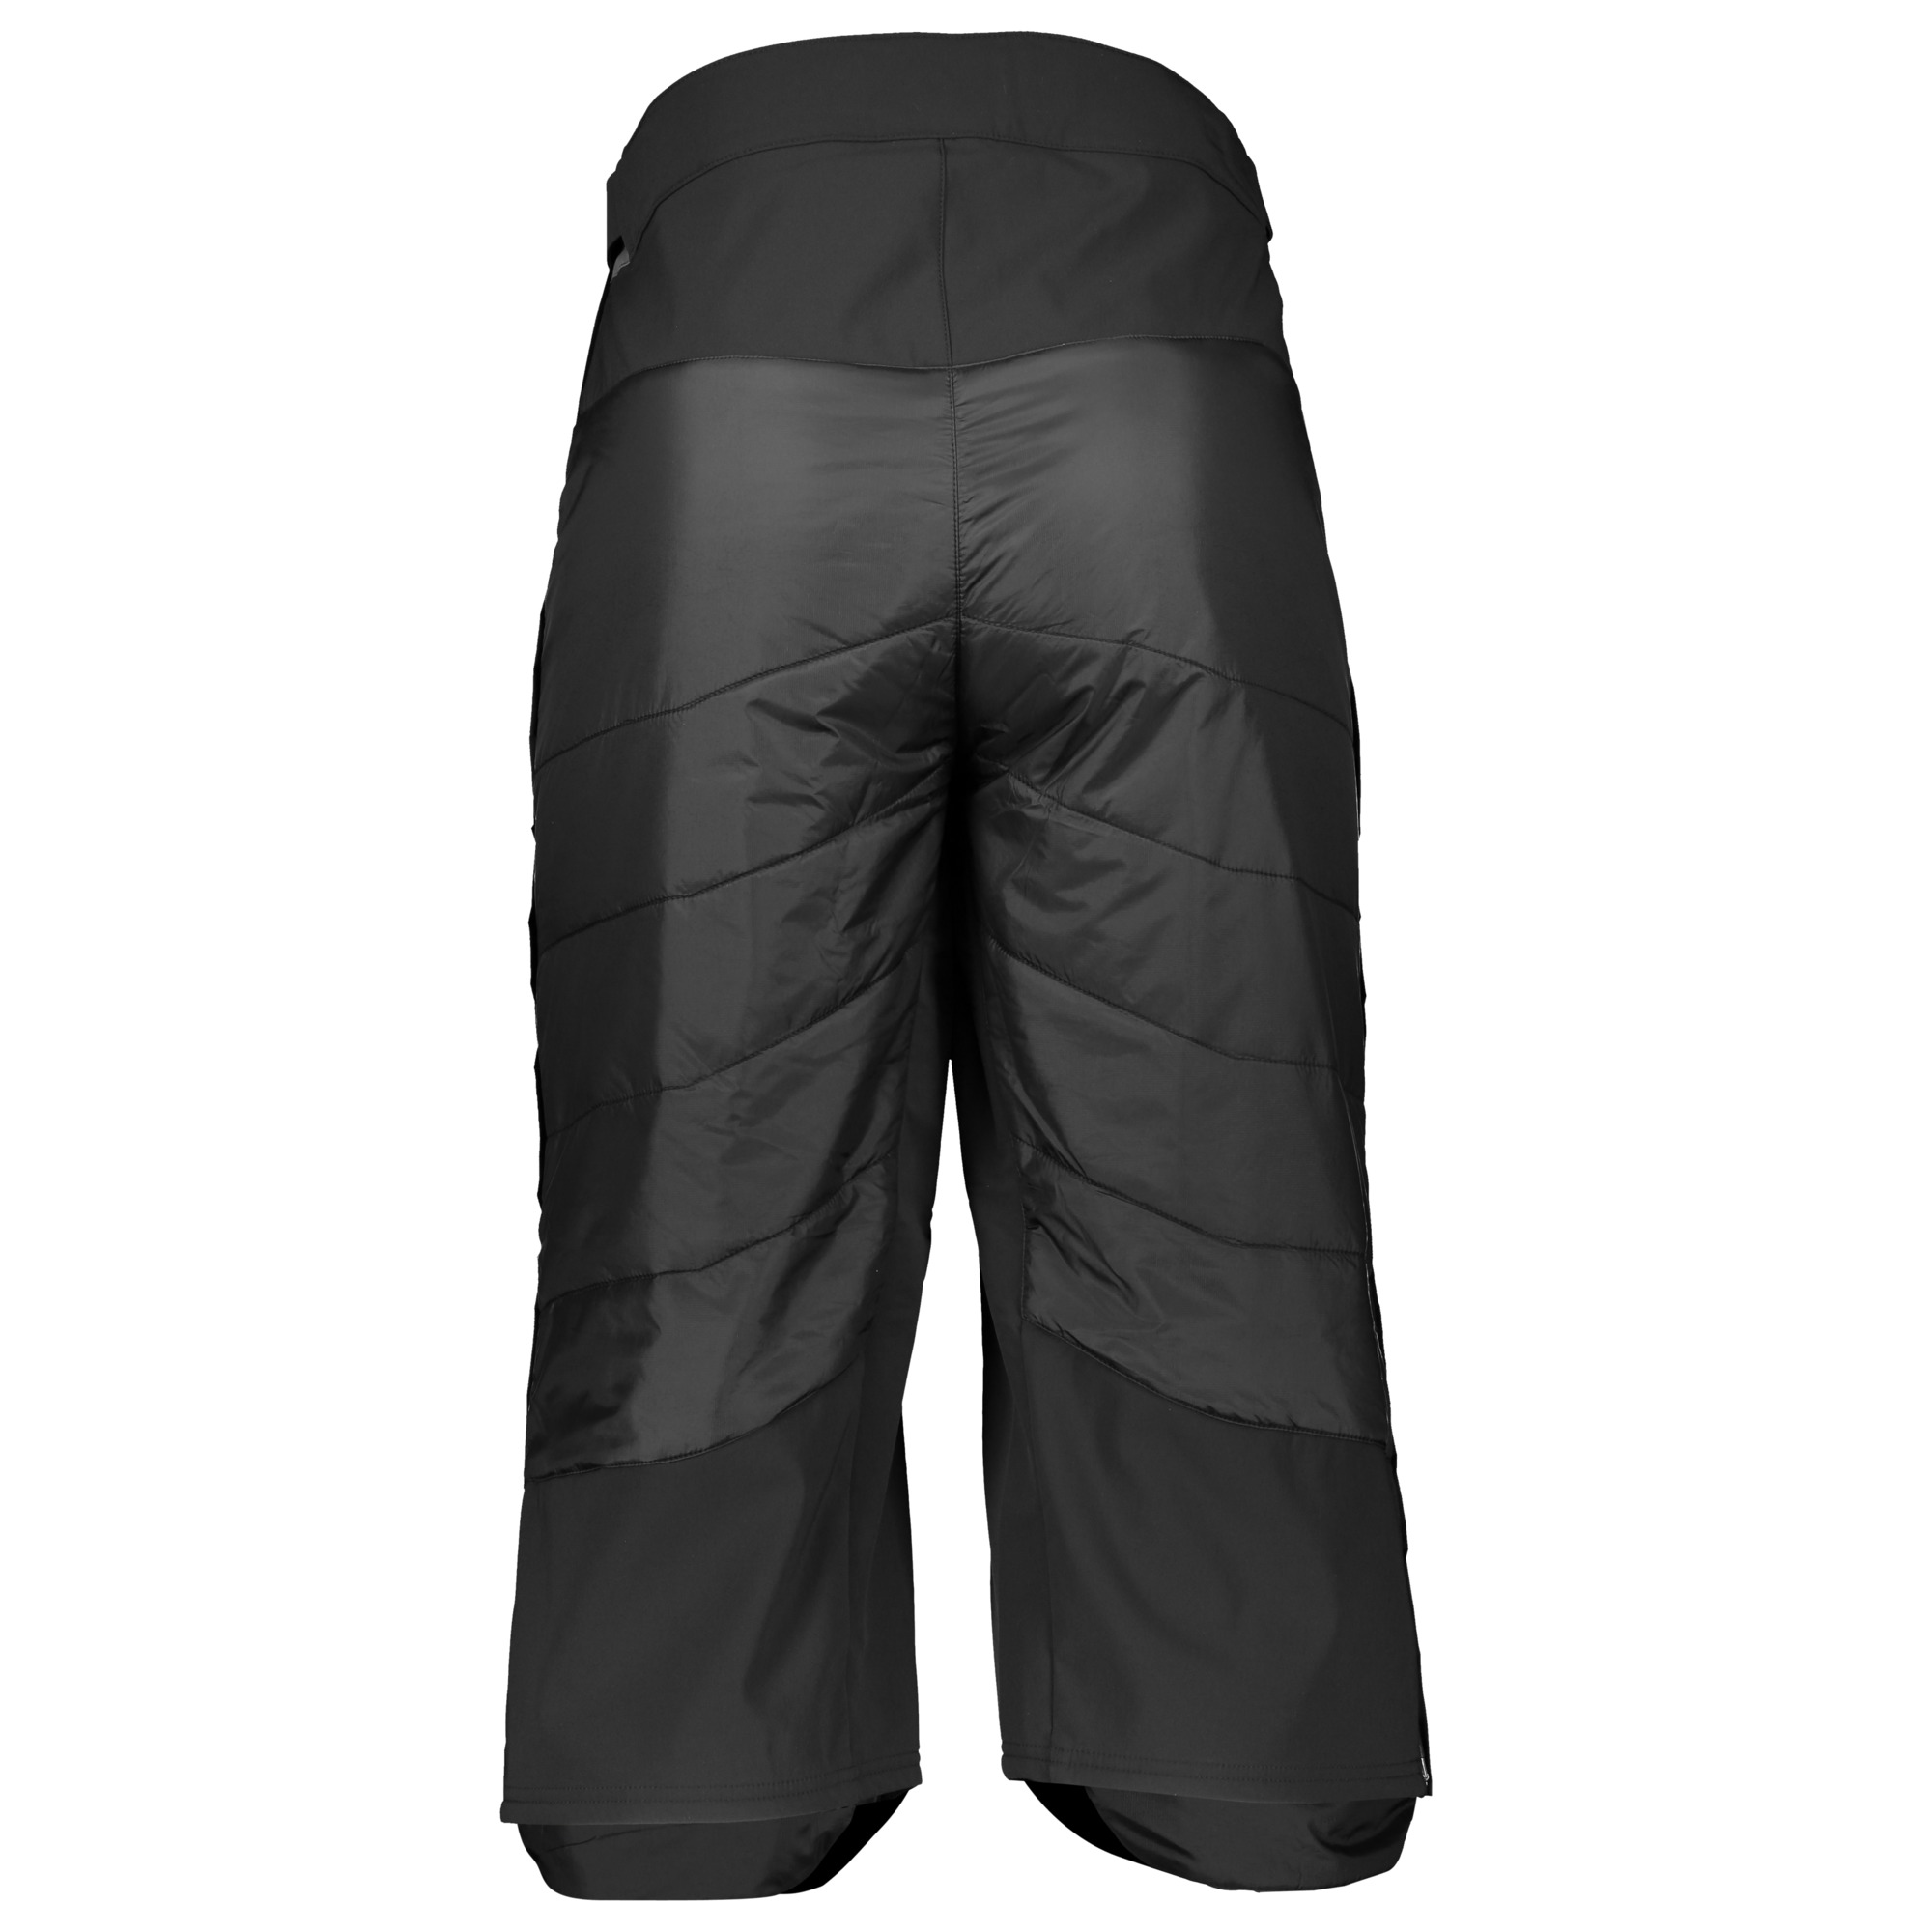 SCOTT Explorair Ascent Short